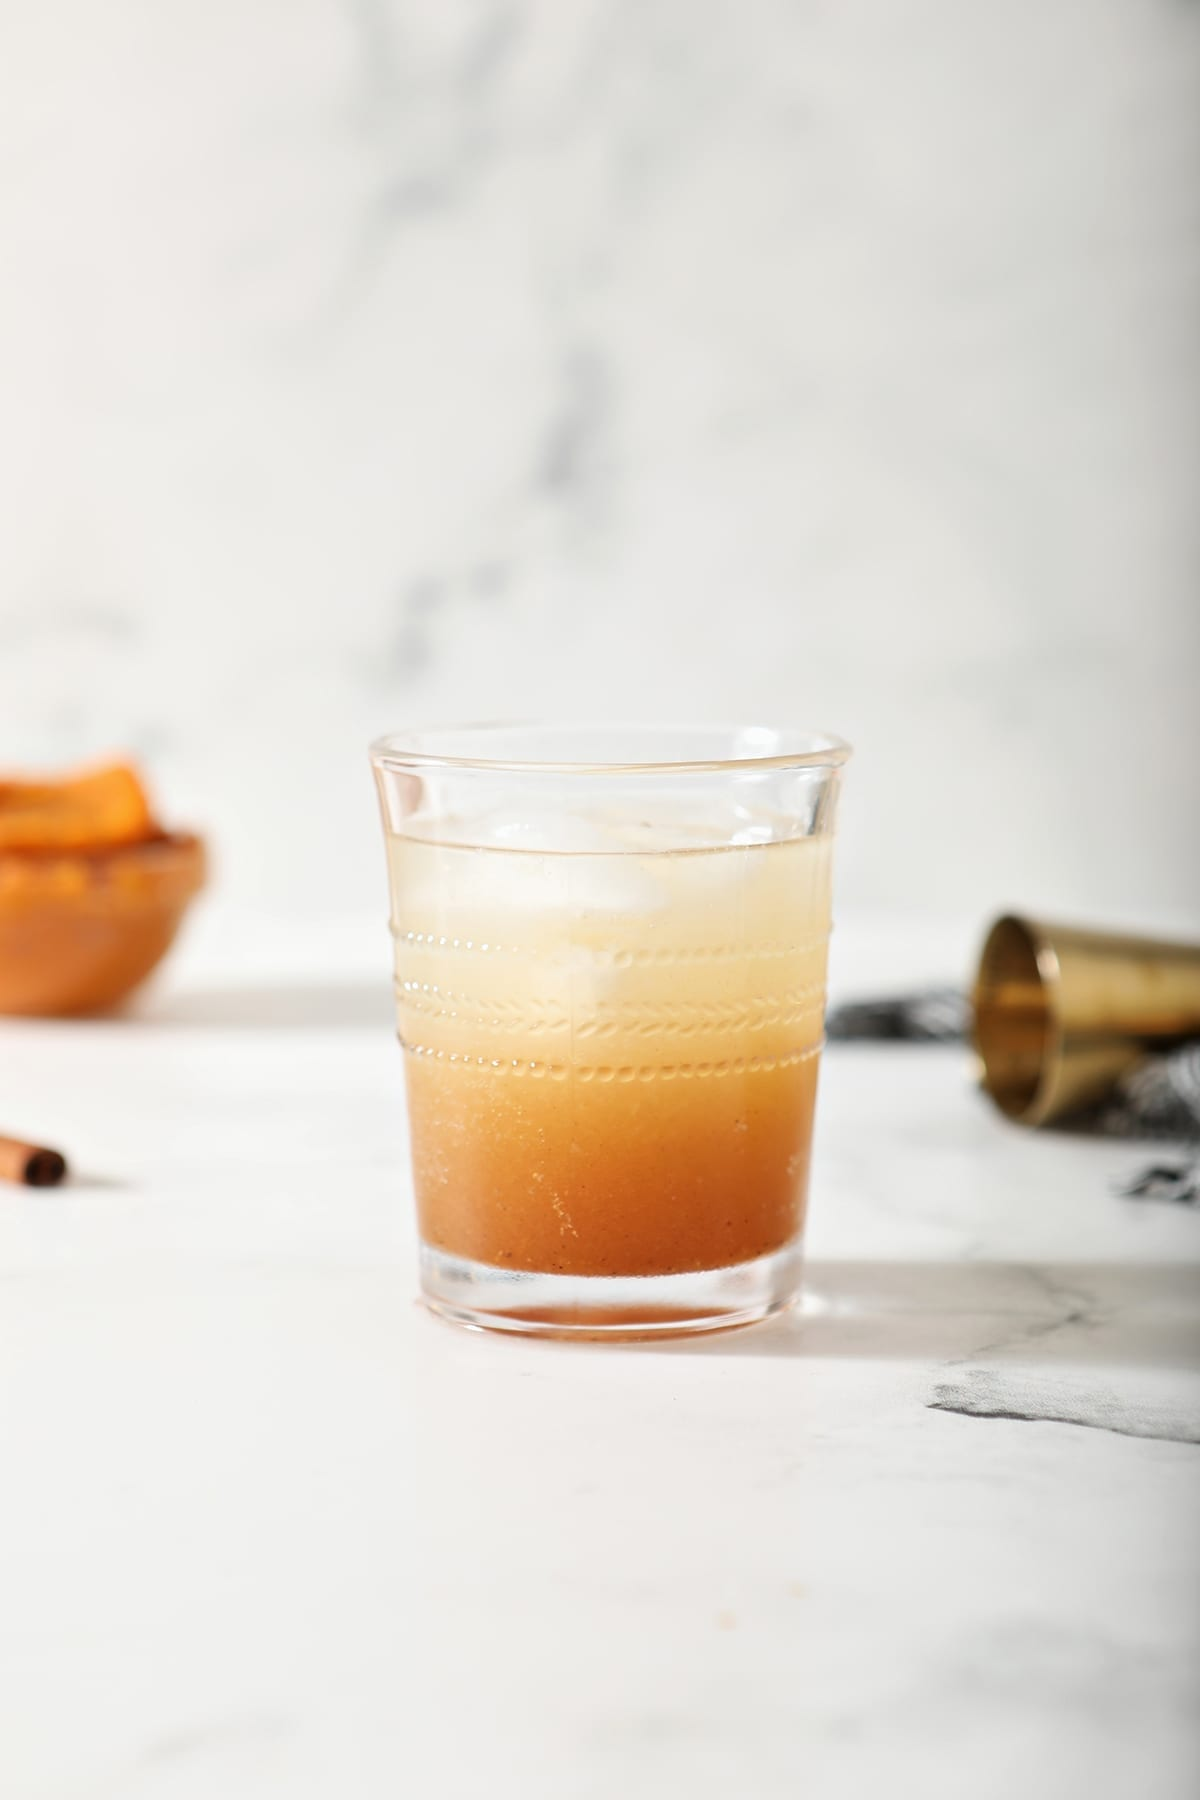 A glass of Pumpkin Spice Moscow Mule on marble, before garnishes are added